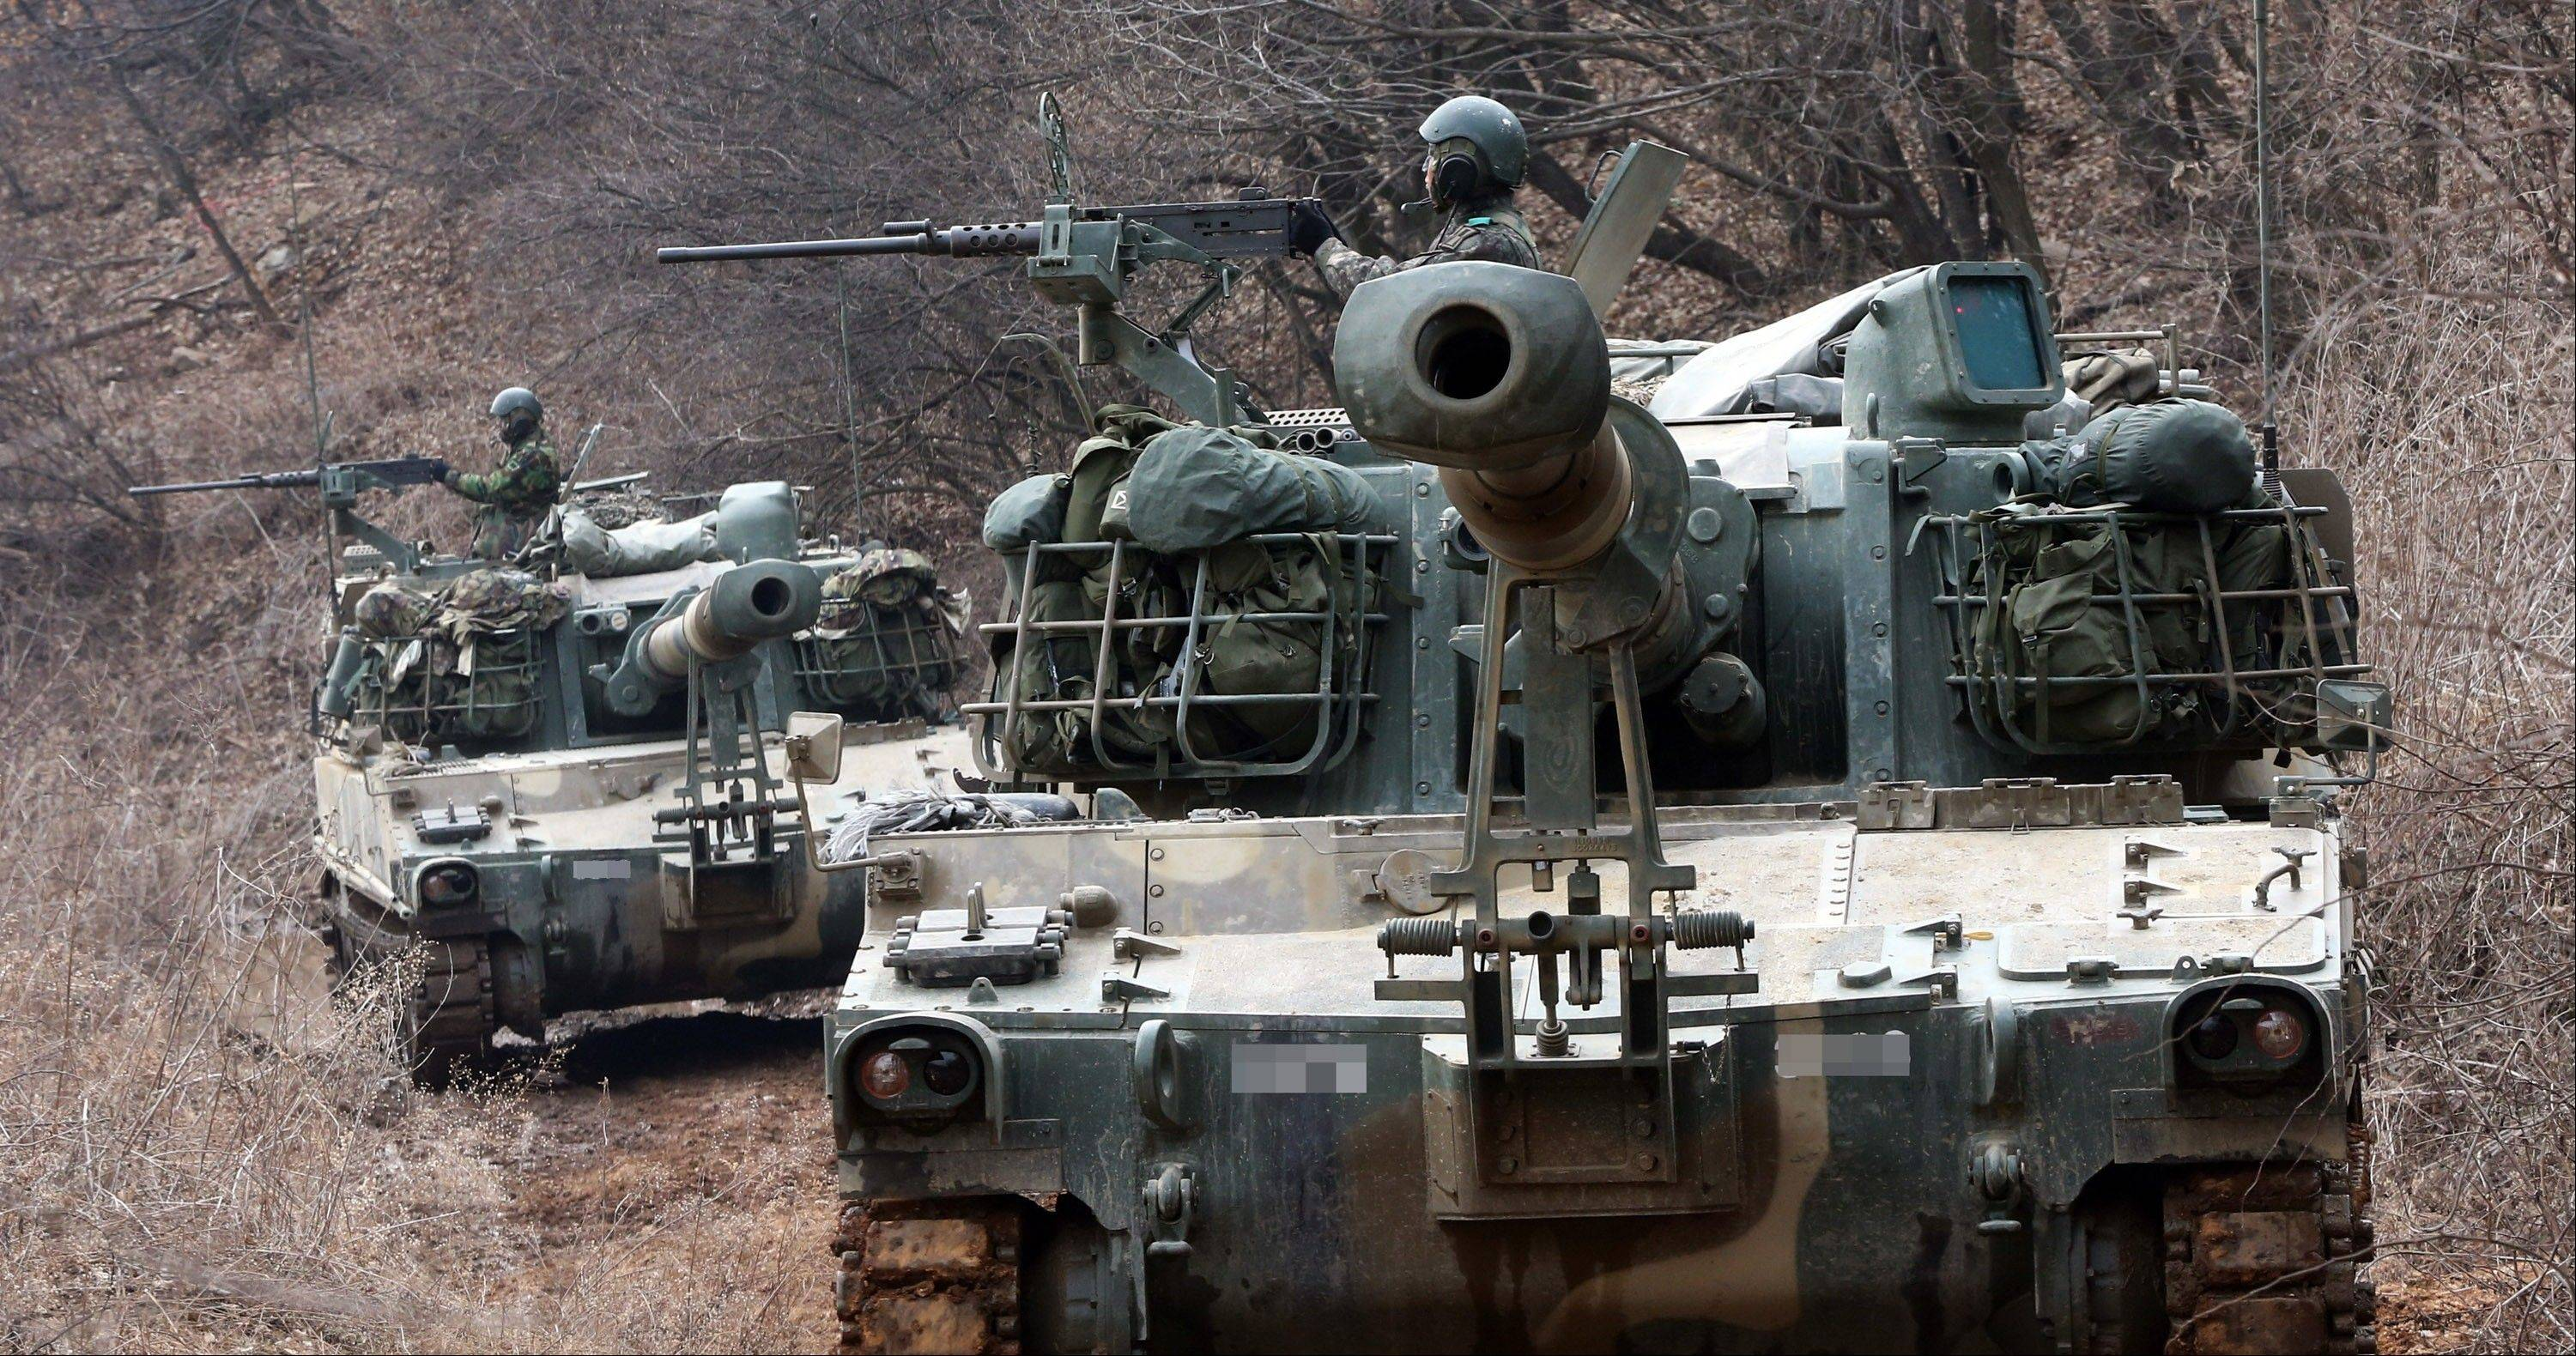 South Korean army K-55 A1 self-propelled artillery vehicles move Tuesday during an exercise against possible attacks by North Korea near the border village of Panmunjom in Paju, South Korea. North Korea�s leader Kim Jong Un urged front-line troops to be on �maximum alert� for a potential war as a state-run newspaper said Pyongyang had carried out a threat to cancel the 1953 armistice that ended the Korean War.